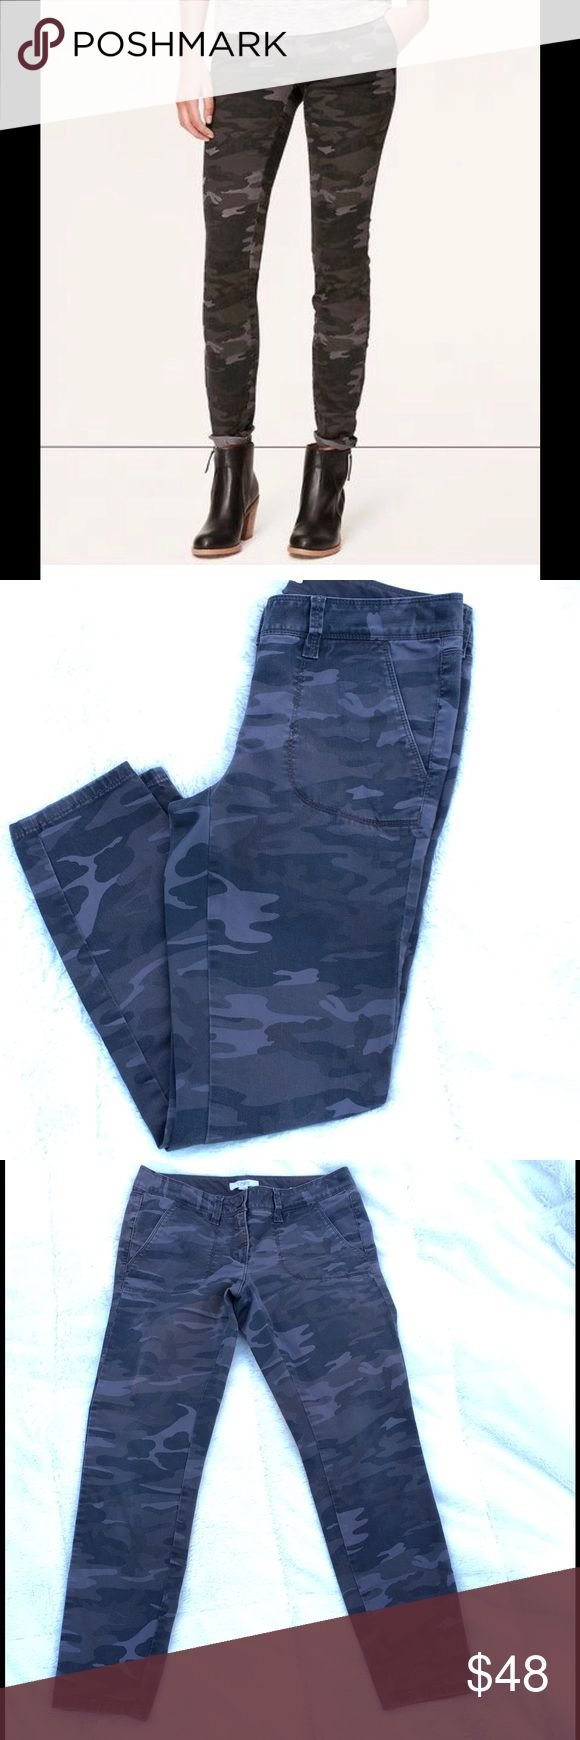 """LOFT Camo Print Skinny Pants, Marissa Fit EUC, camouflage print skinny/ankle pants with pockets at both hips, zipper fly with button closure and 2 back pockets, 97% cotton, 3% spandex. Hip to hip measures about 14.5""""; front rise about 8"""", inseam is 26"""" Pants Skinny"""